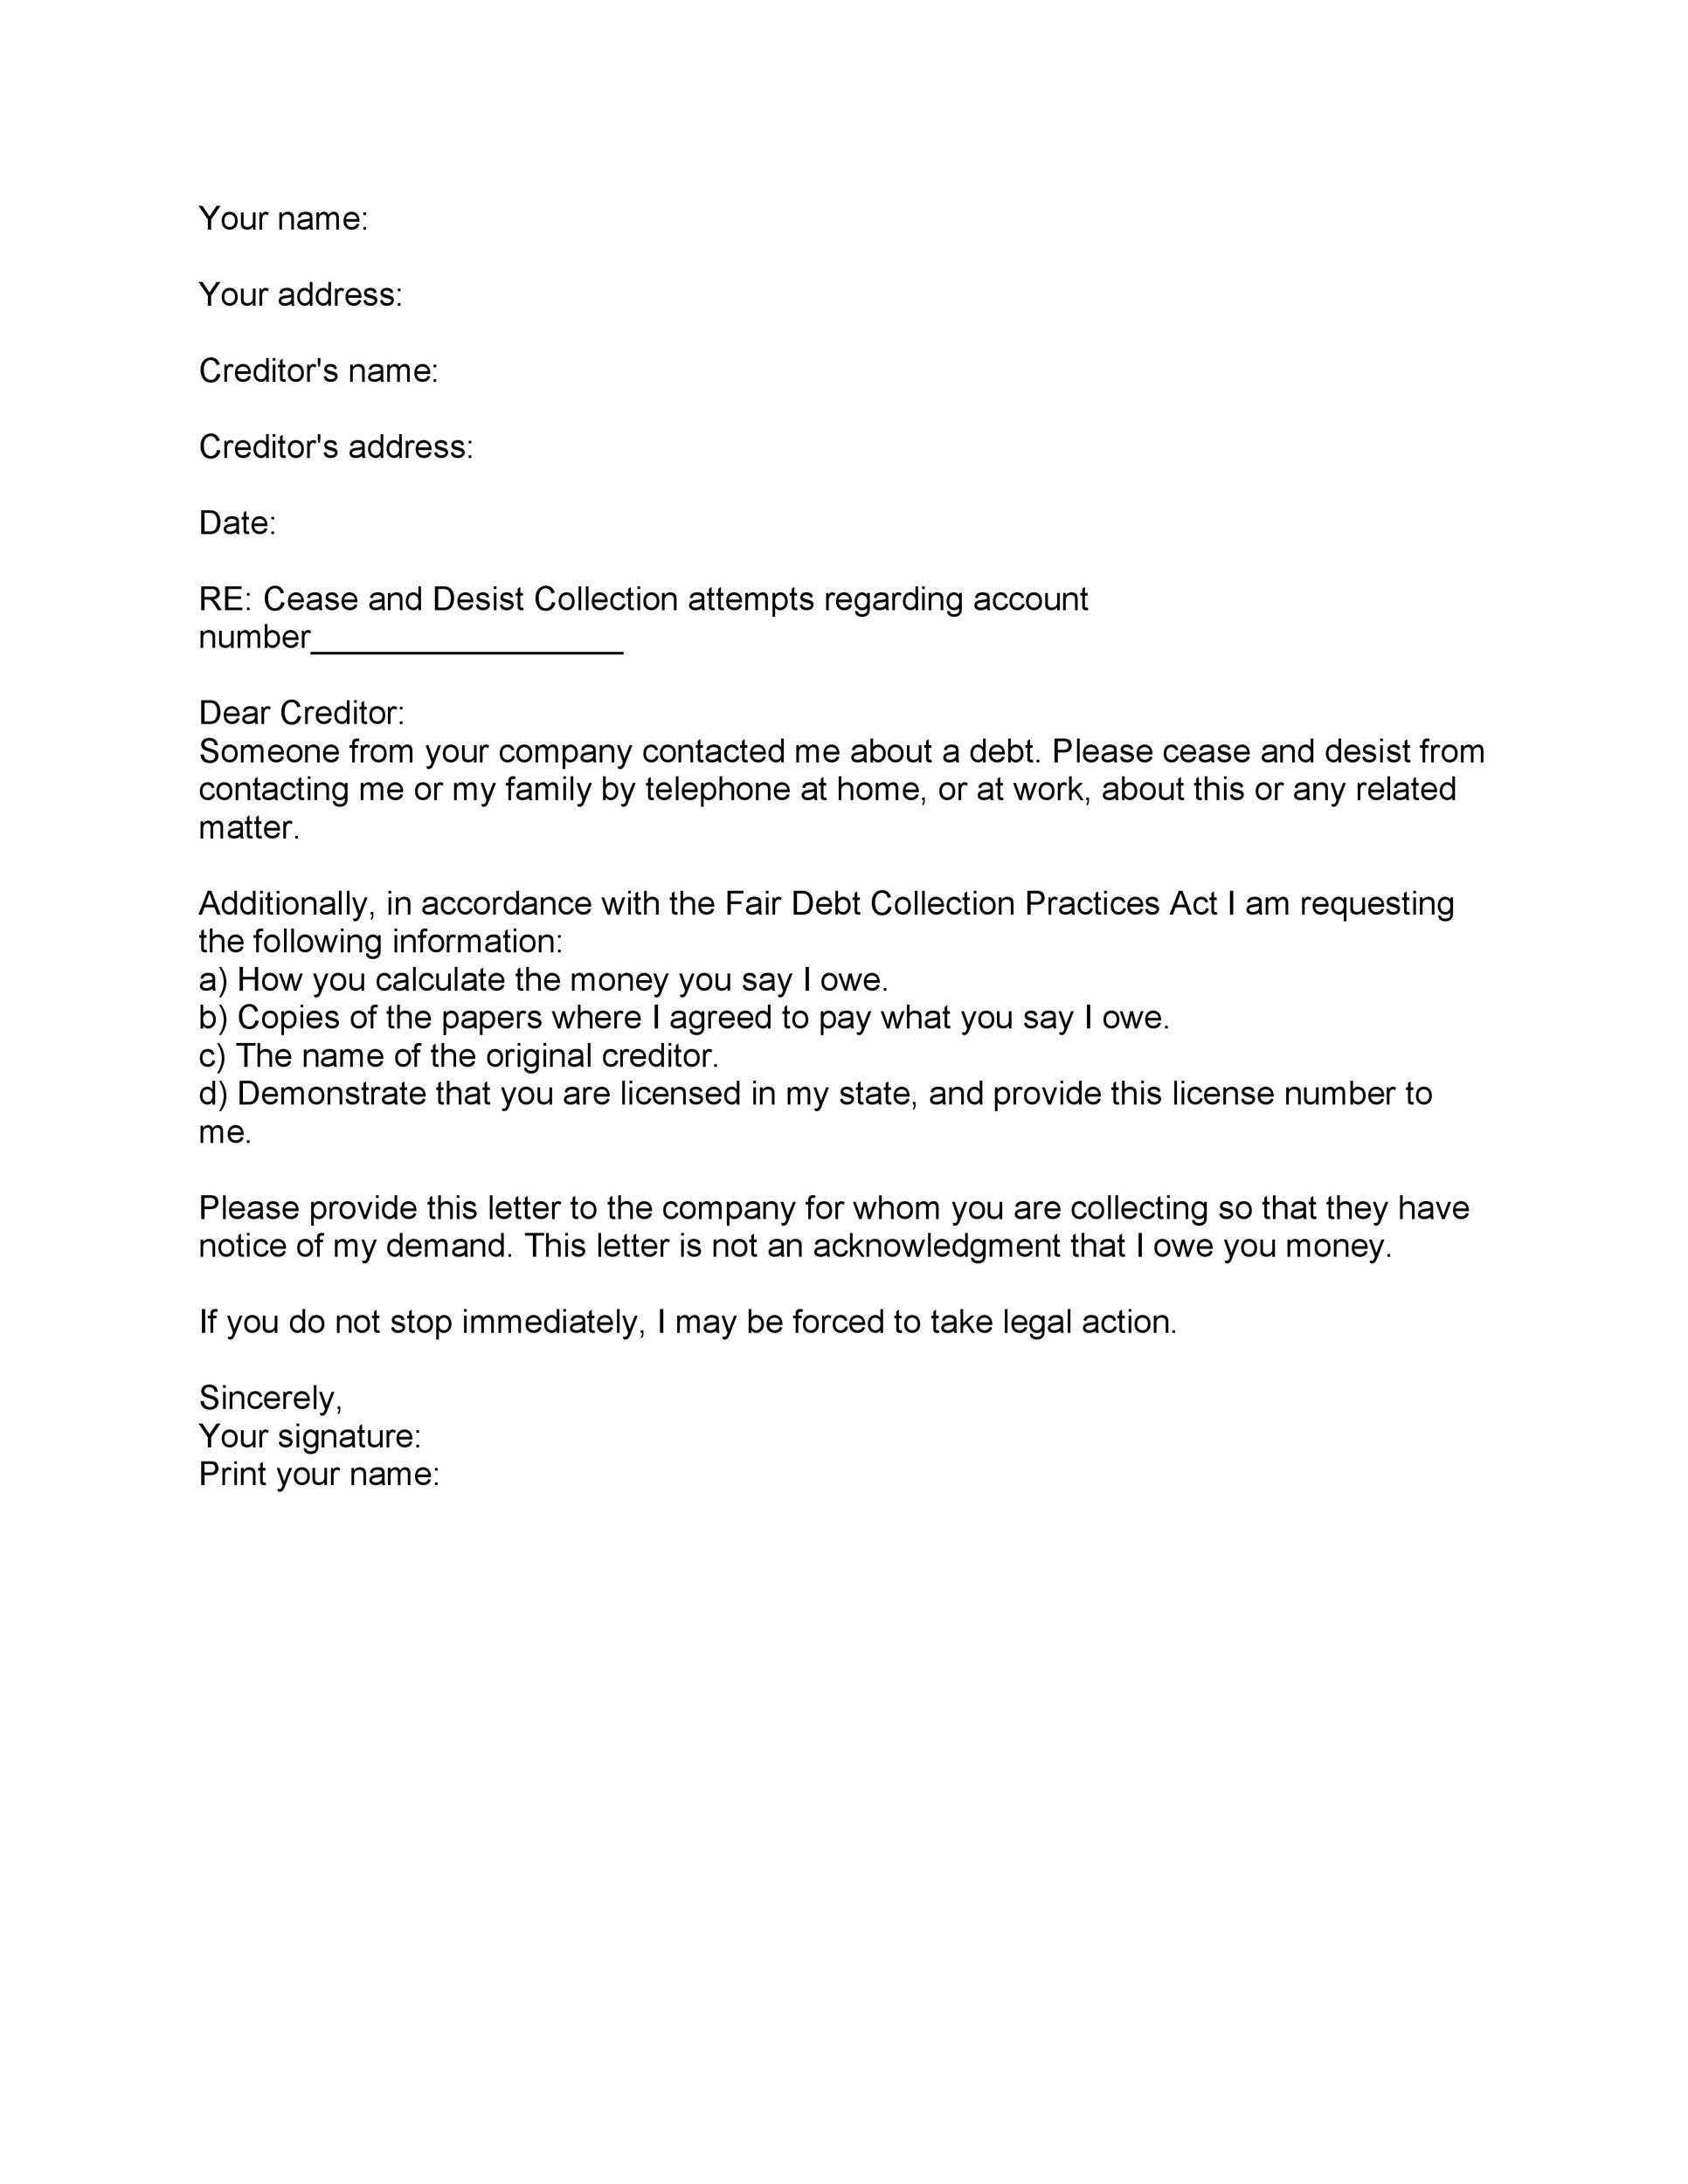 Demand Letter for Money Owed